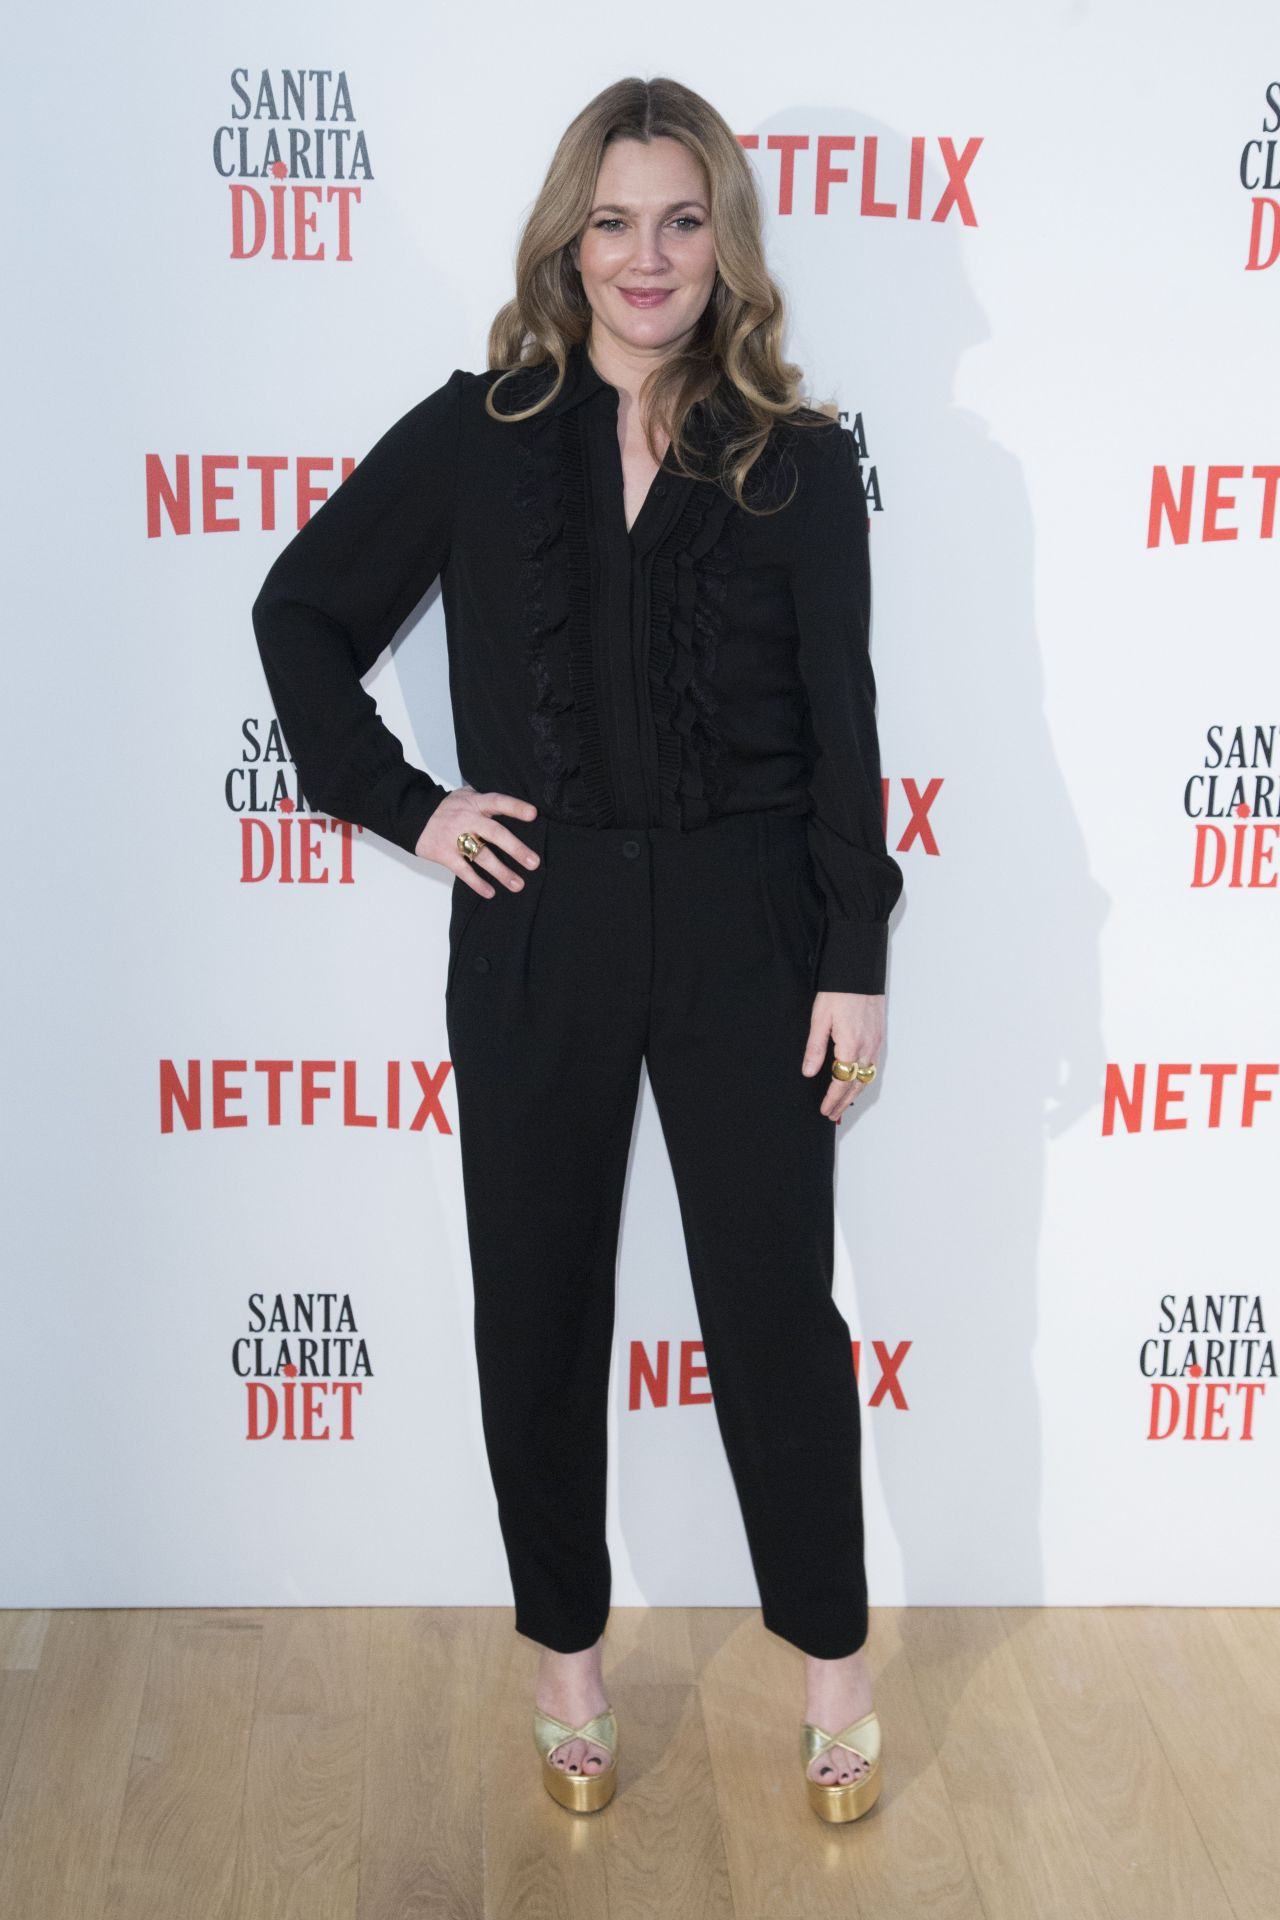 Inside The 'Santa Clarita Diet Season 3' LA Premiere [Photos]